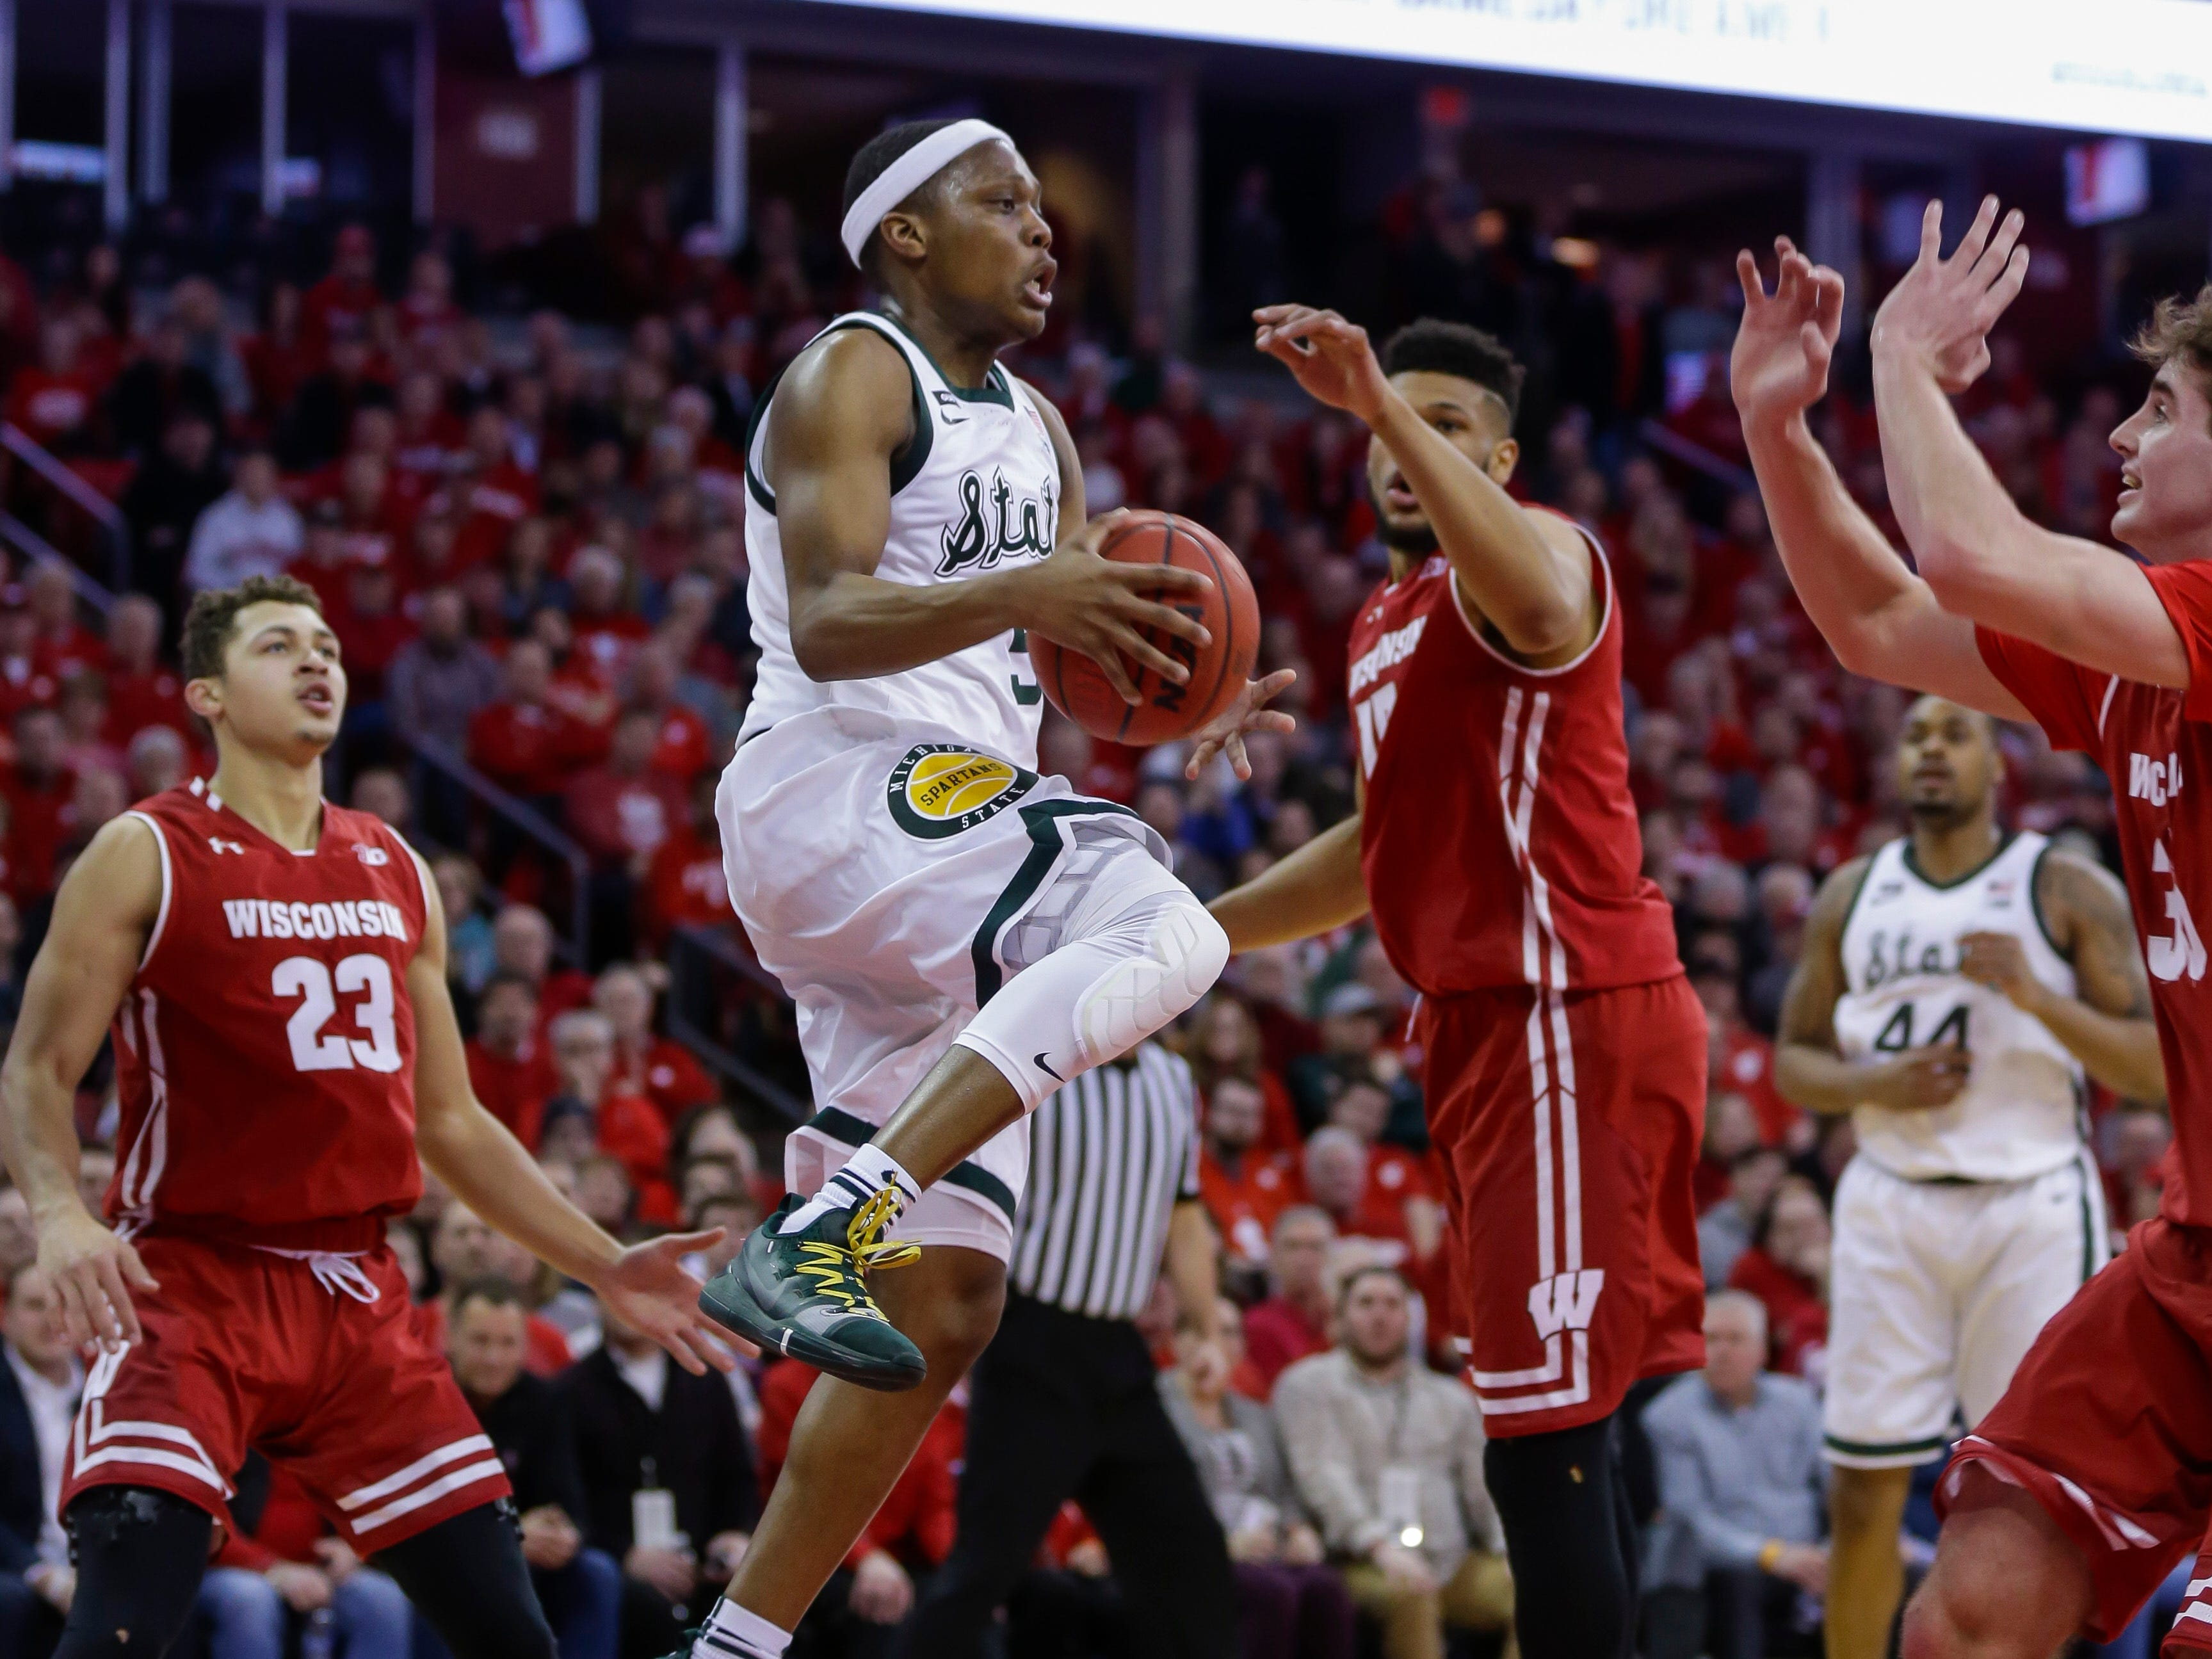 Michigan States's Cassius Winston (5) looks to pass as Wisconsin's Charles Thomas (15) defends during the first half of an NCAA college basketball game Tuesday, Feb. 12, 2019, in Madison, Wis.